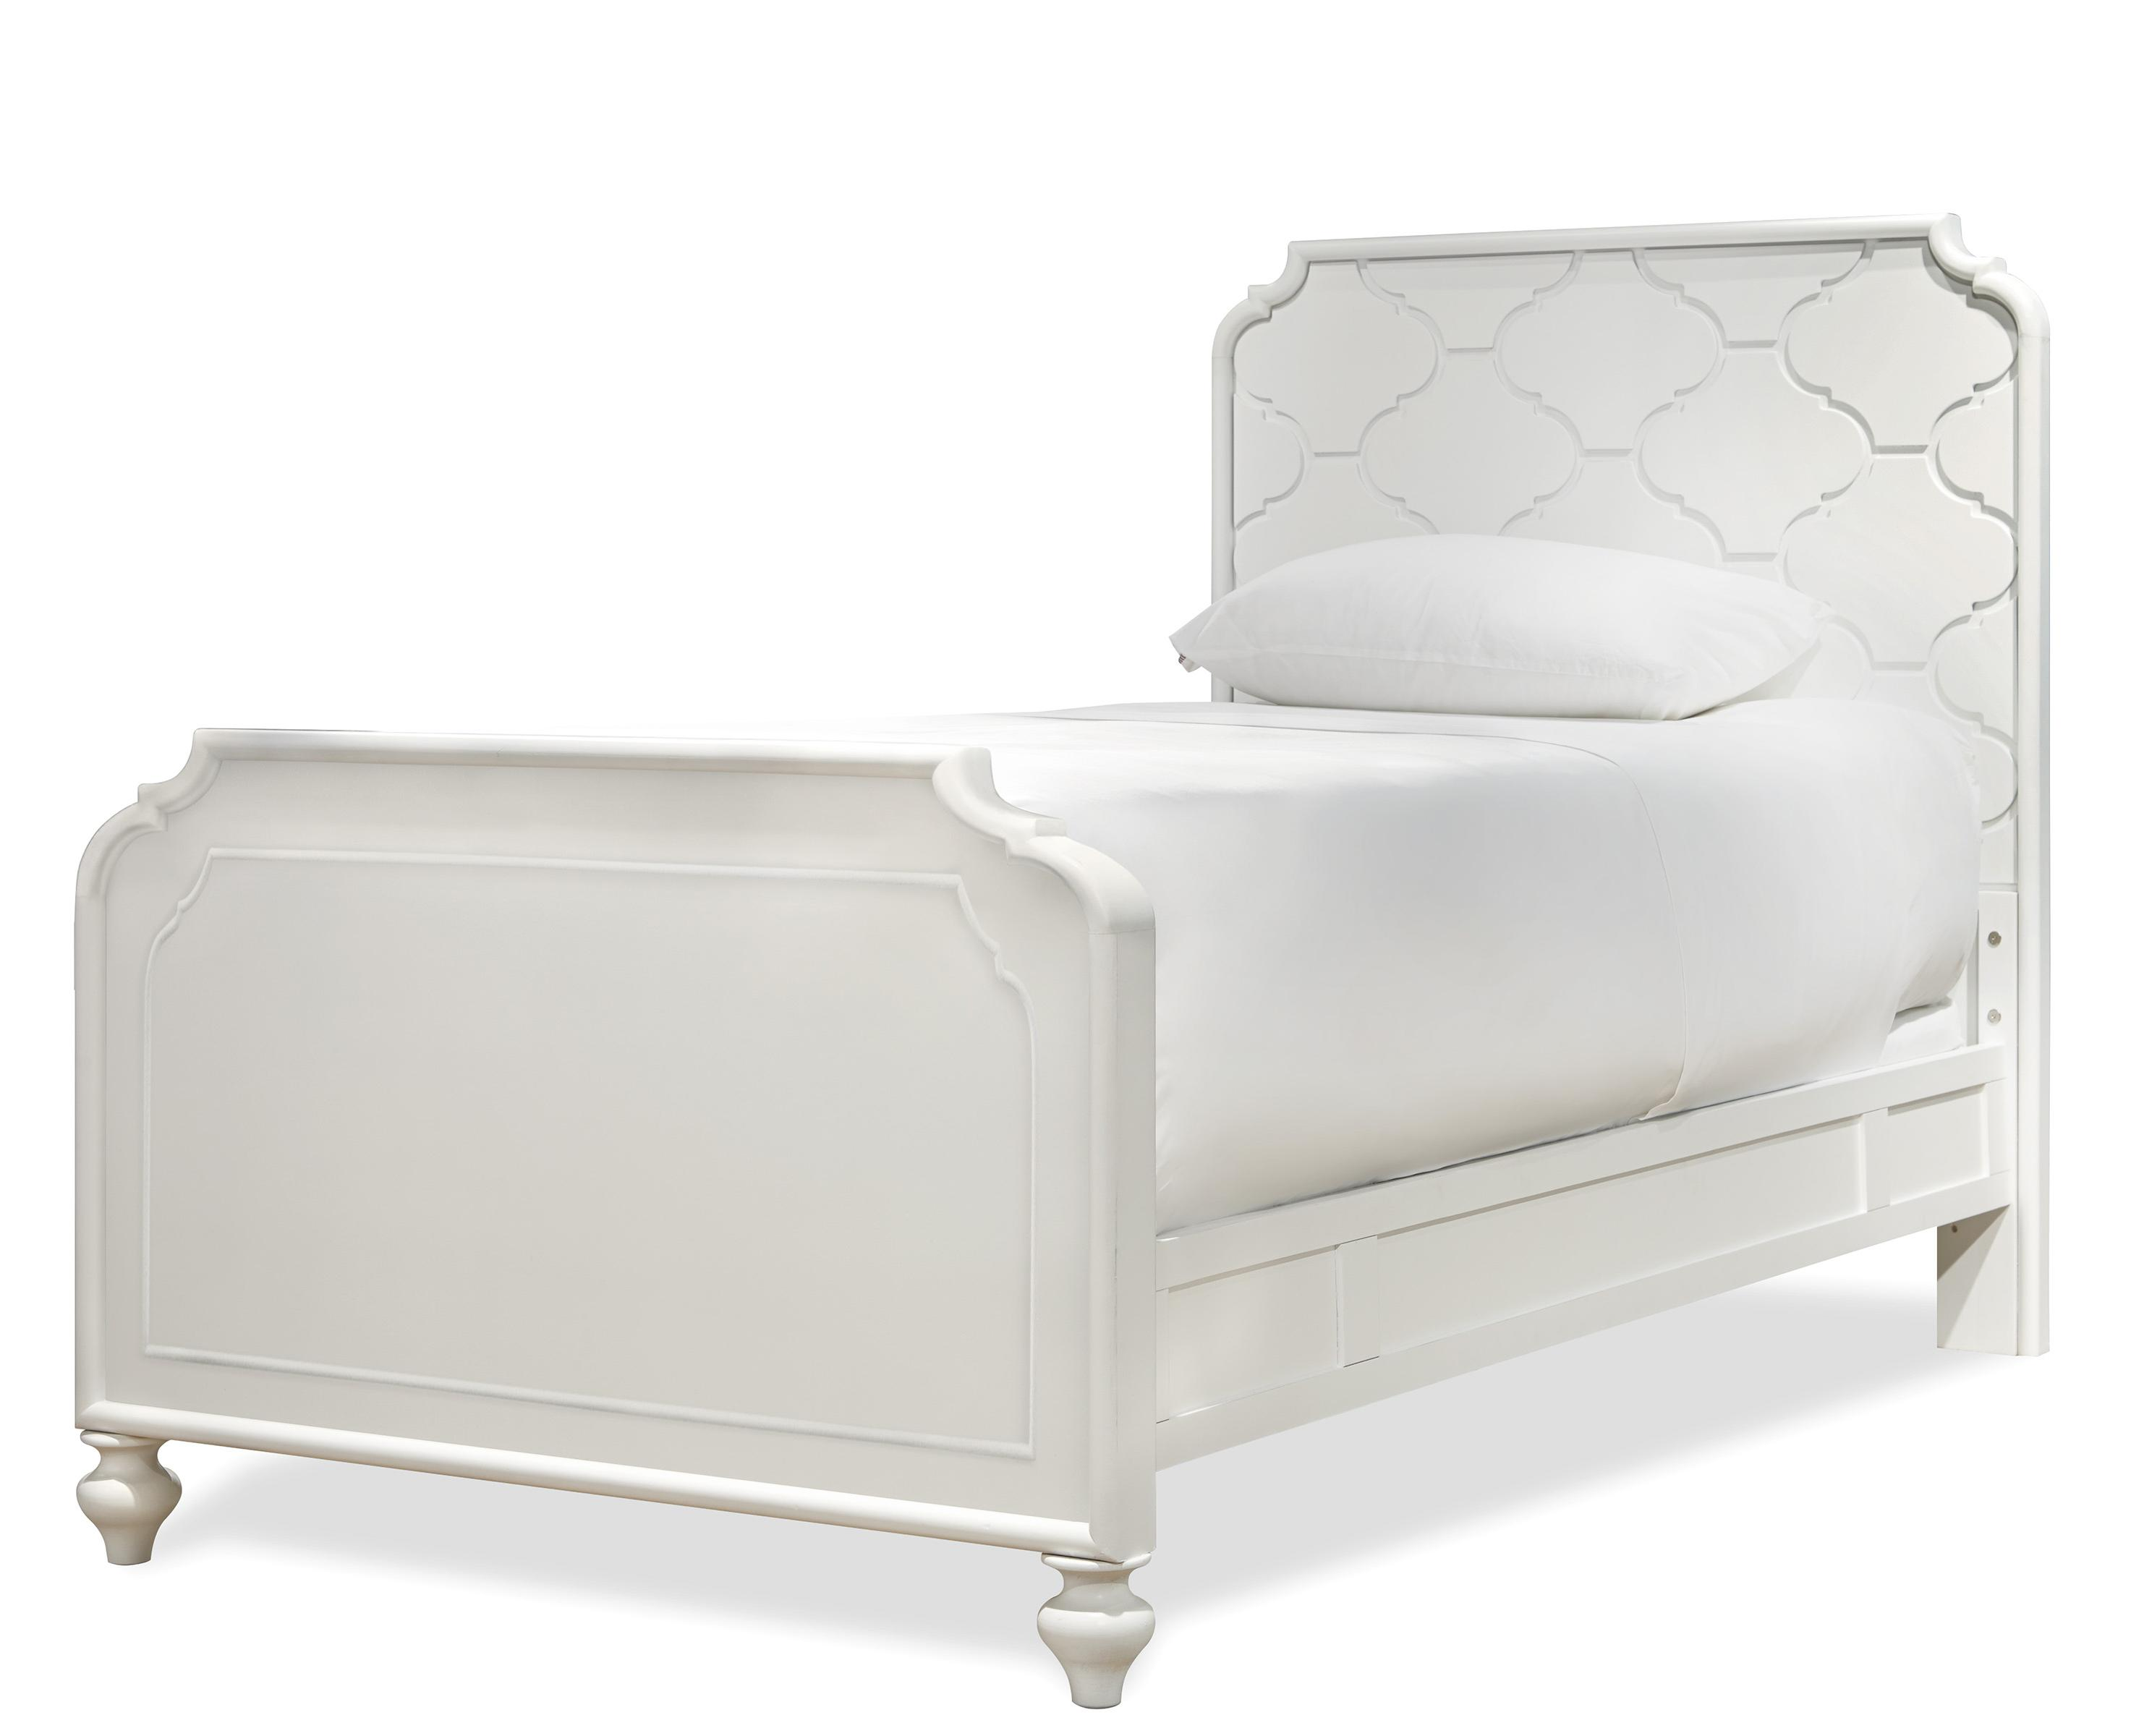 Smartstuff Black and White Twin Bed - Item Number: 437A035